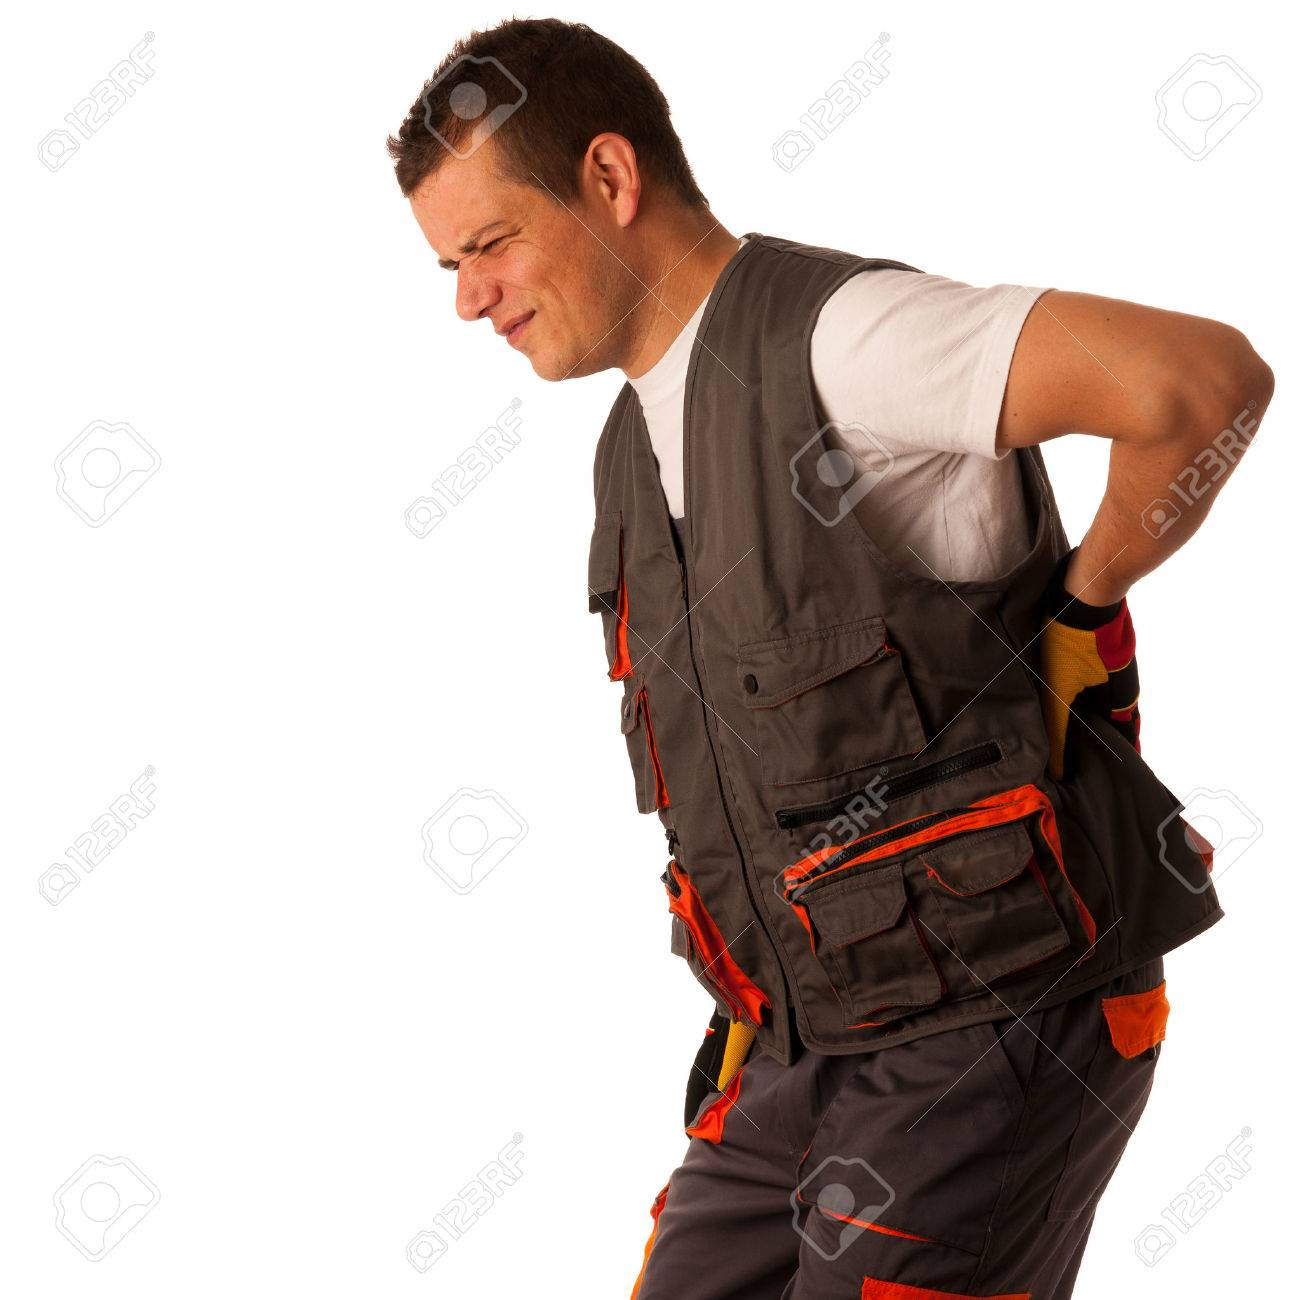 Injury on work - construction worker suffering hard pain in his back Stock Photo - 23161051